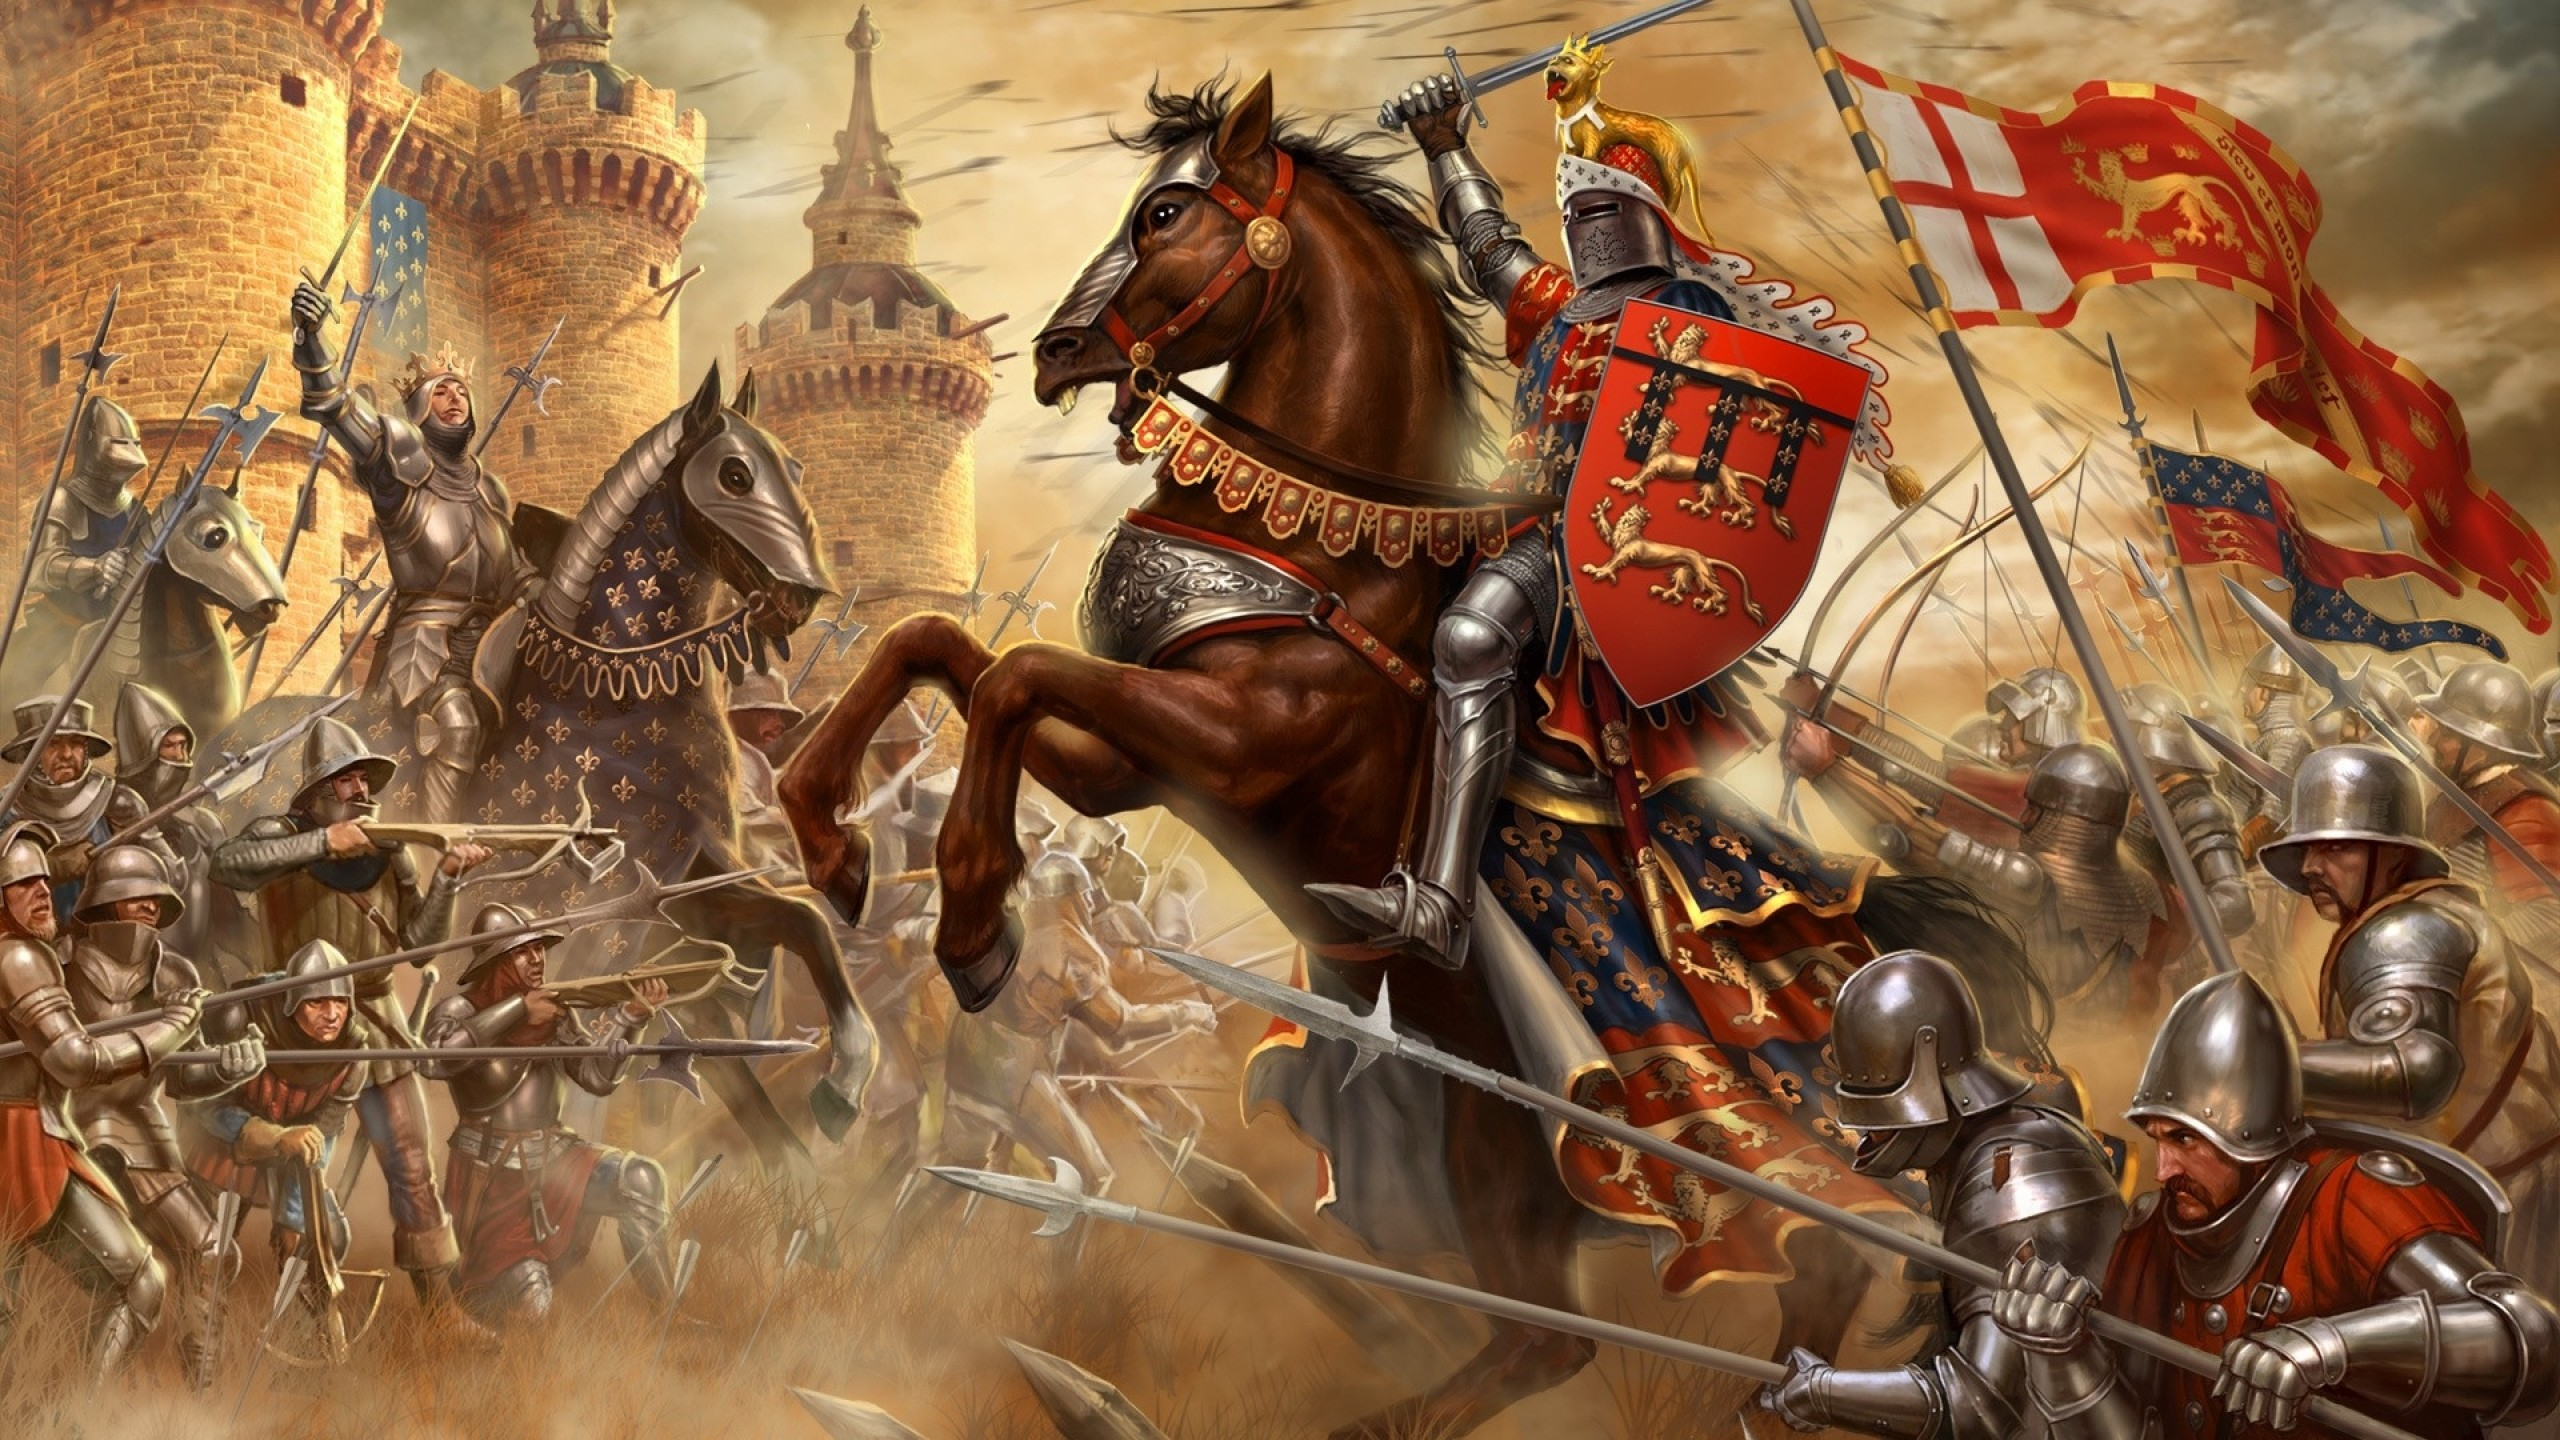 2560x1440 video games england knights france horses medieval 1920x1080 wallpaper Art  HD Wallpaper